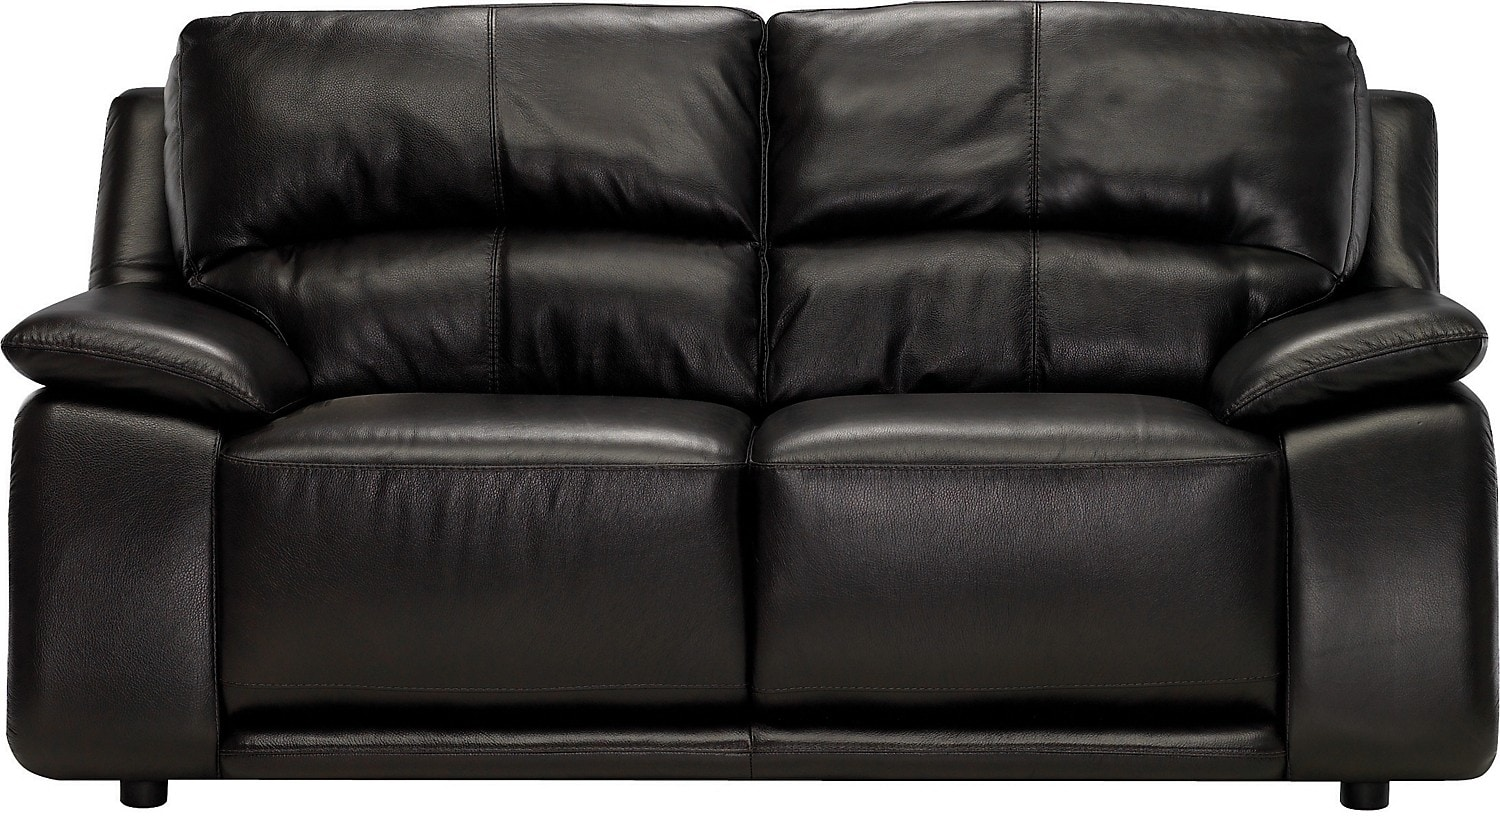 Living Room Furniture - Chateau d'Ax 100% Genuine Leather Loveseat - Dark Chocolate